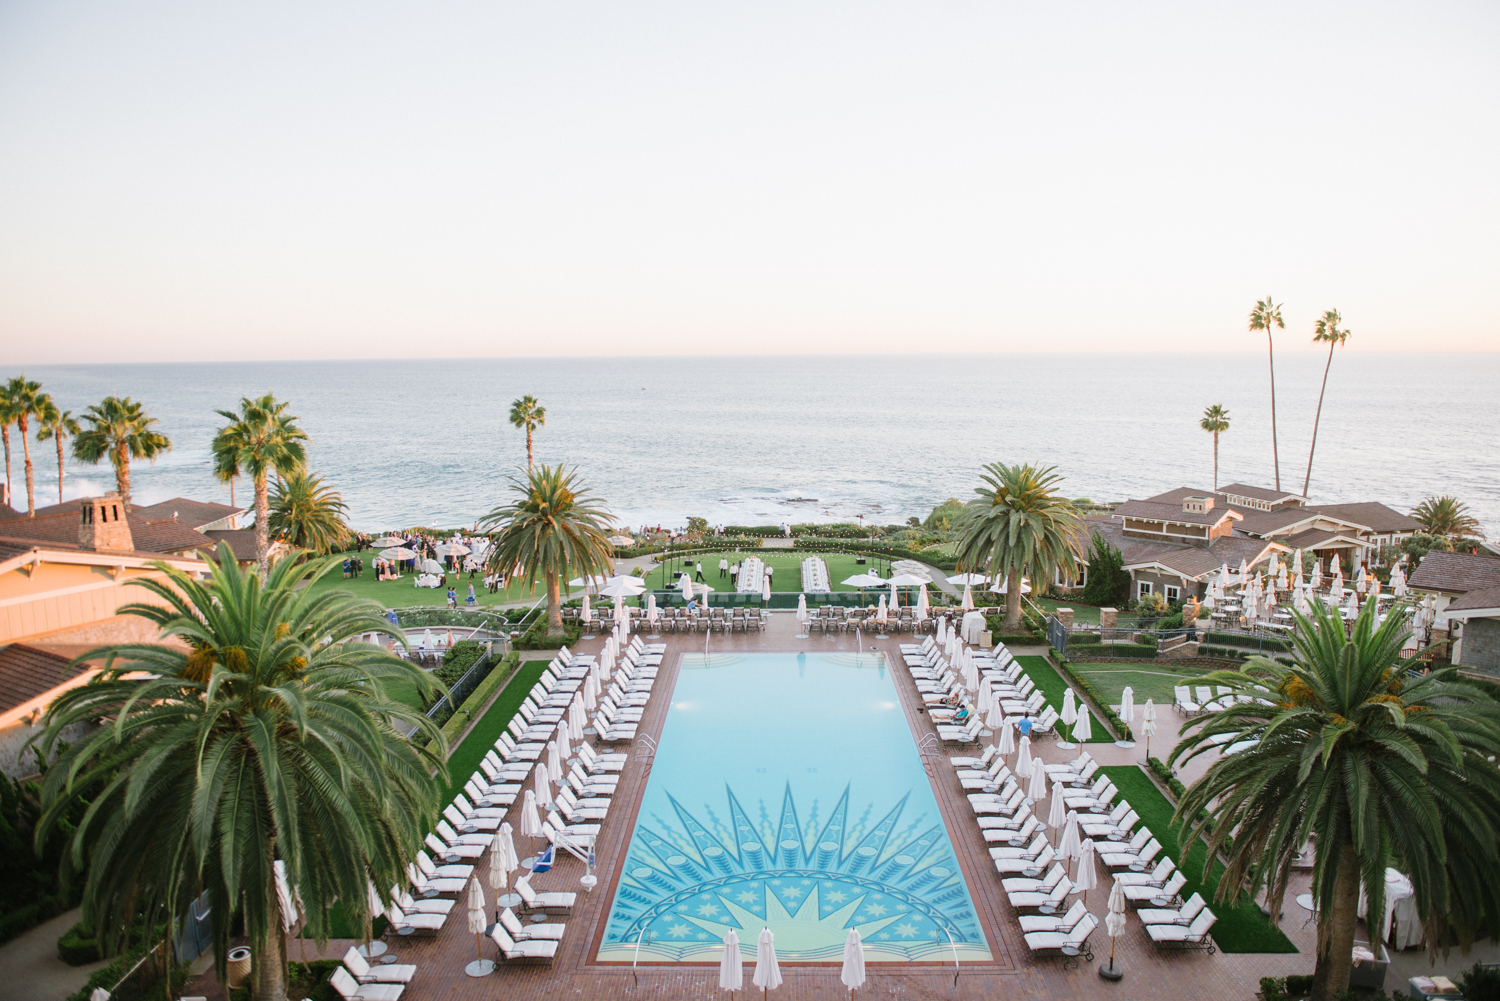 A stunning view from the Ritz Carlton, of the luxurious pool and expansive Pacific Ocean at sunset, a lovely venue for a wedding reception; photo by Sylvie Gil